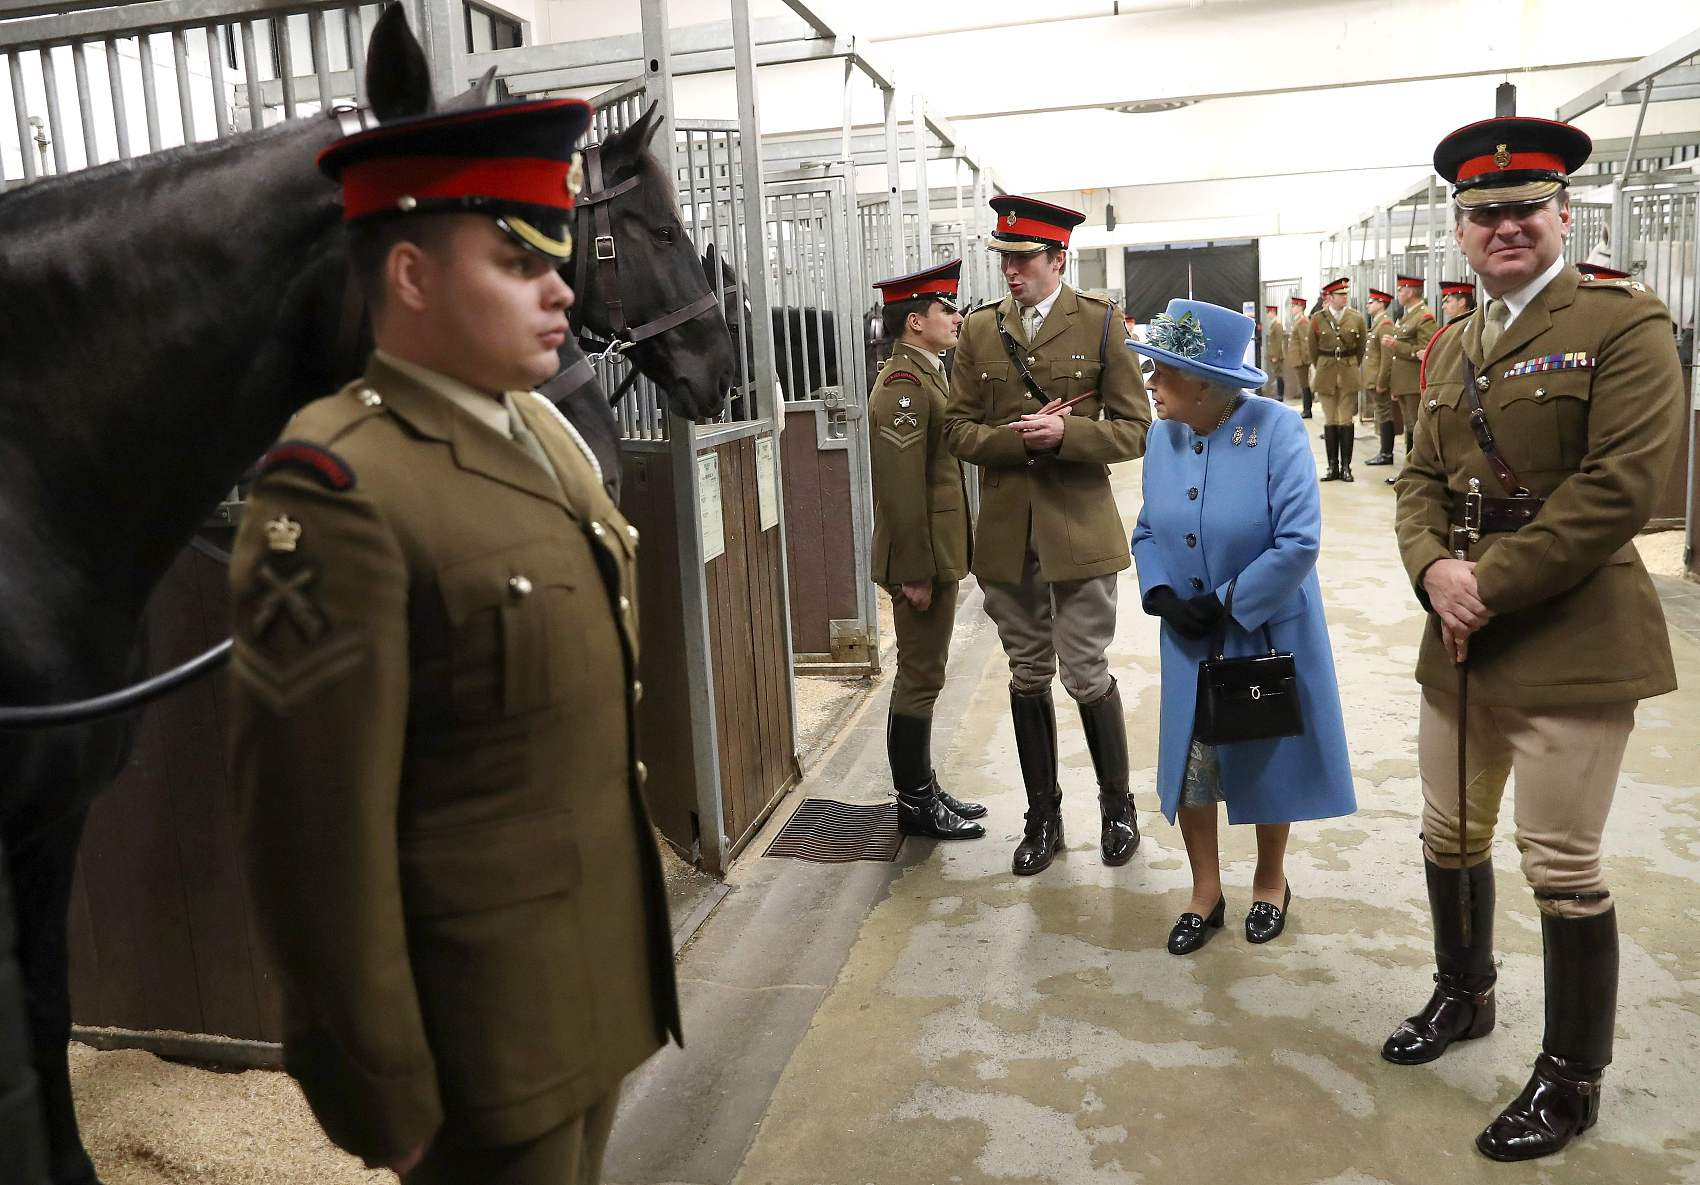 Heathrow launches probe after queen's  security details found